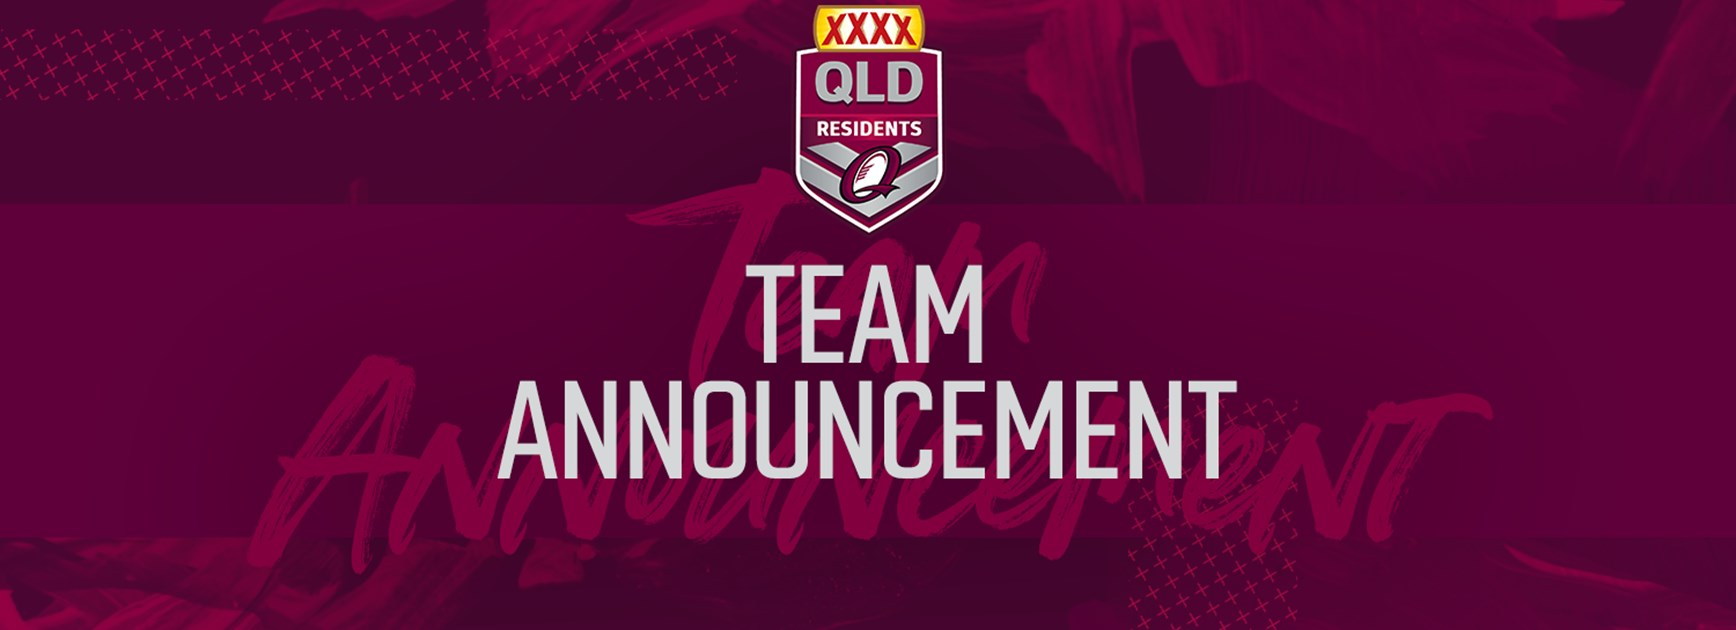 XXXX Queensland Residents team for 2019 clash